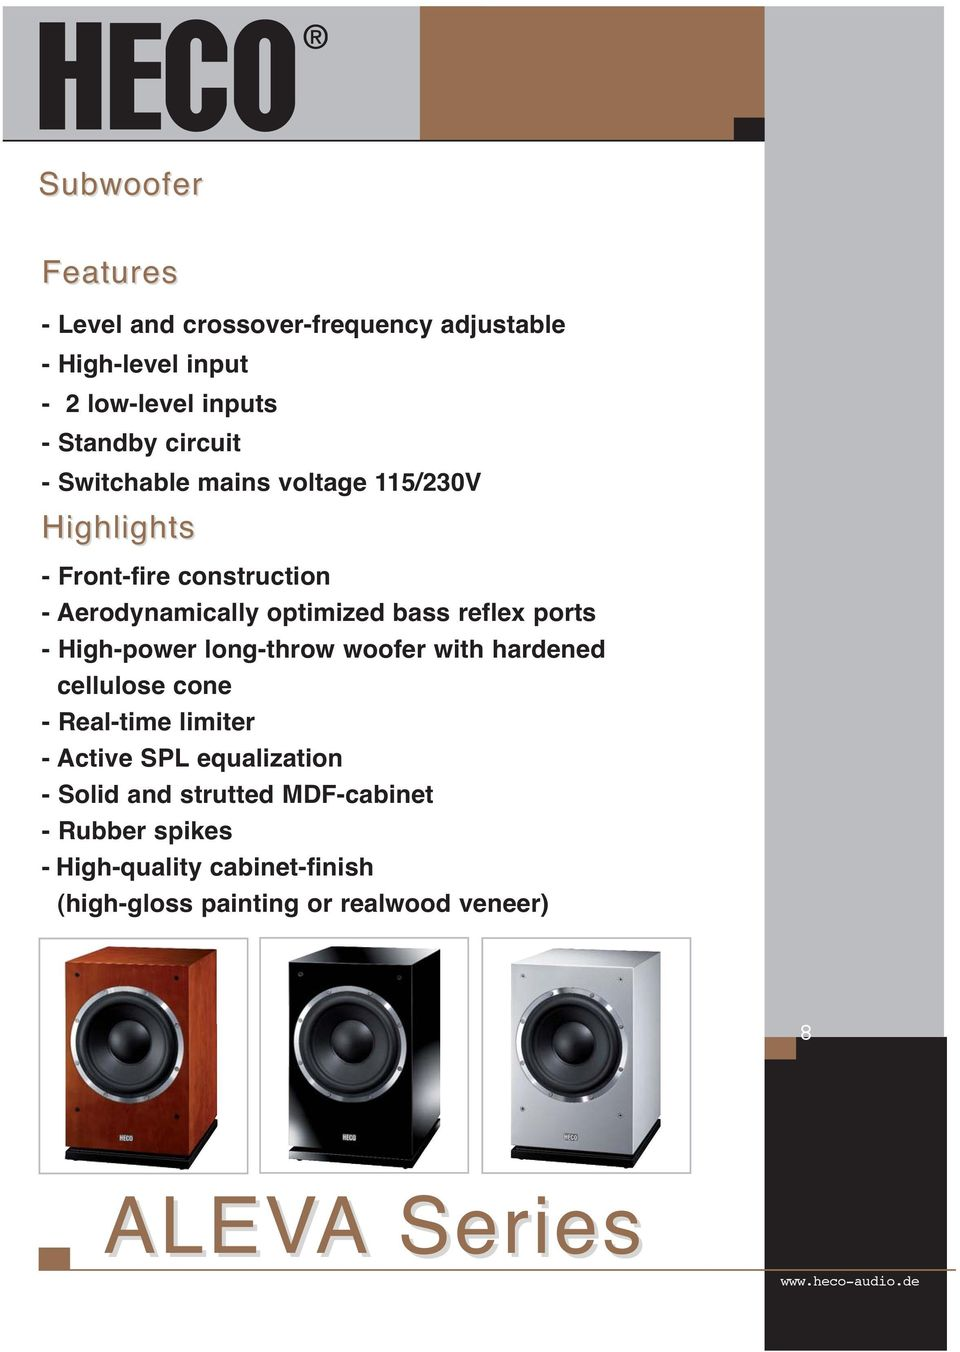 reflex ports - High-power long-throw woofer with hardened cellulose cone - Real-time limiter - Active SPL